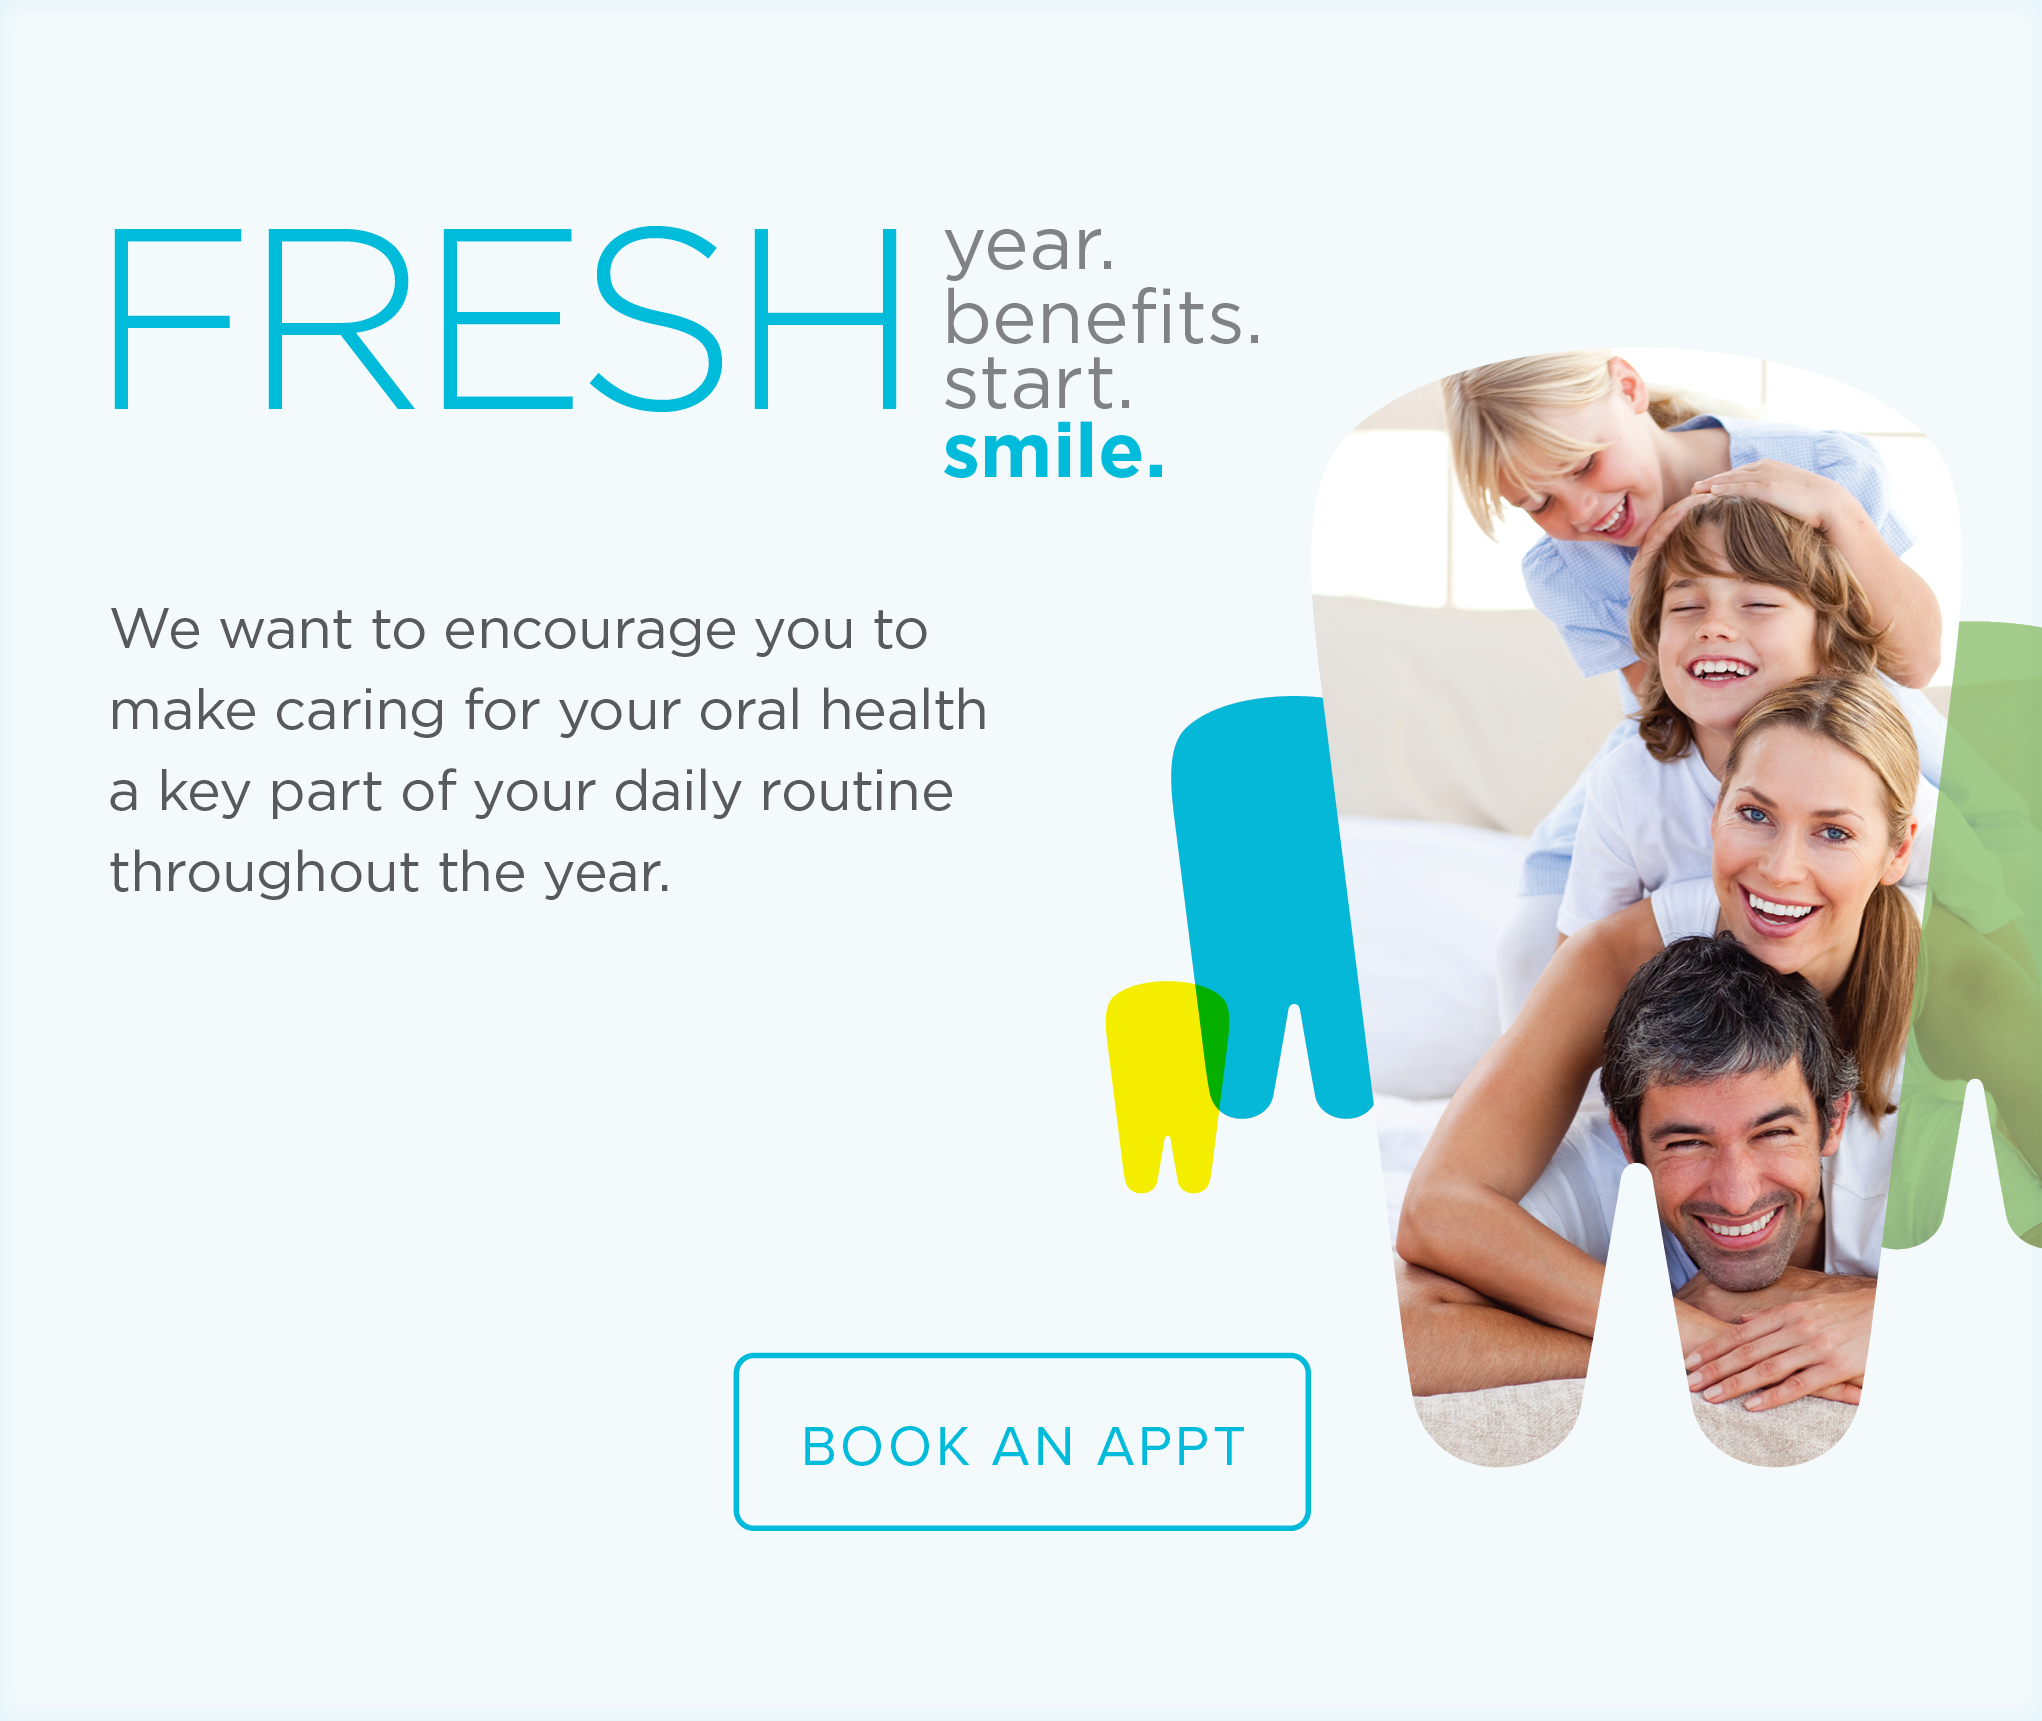 MacDonald Ranch Modern Dentistry - Make the Most of Your Benefits